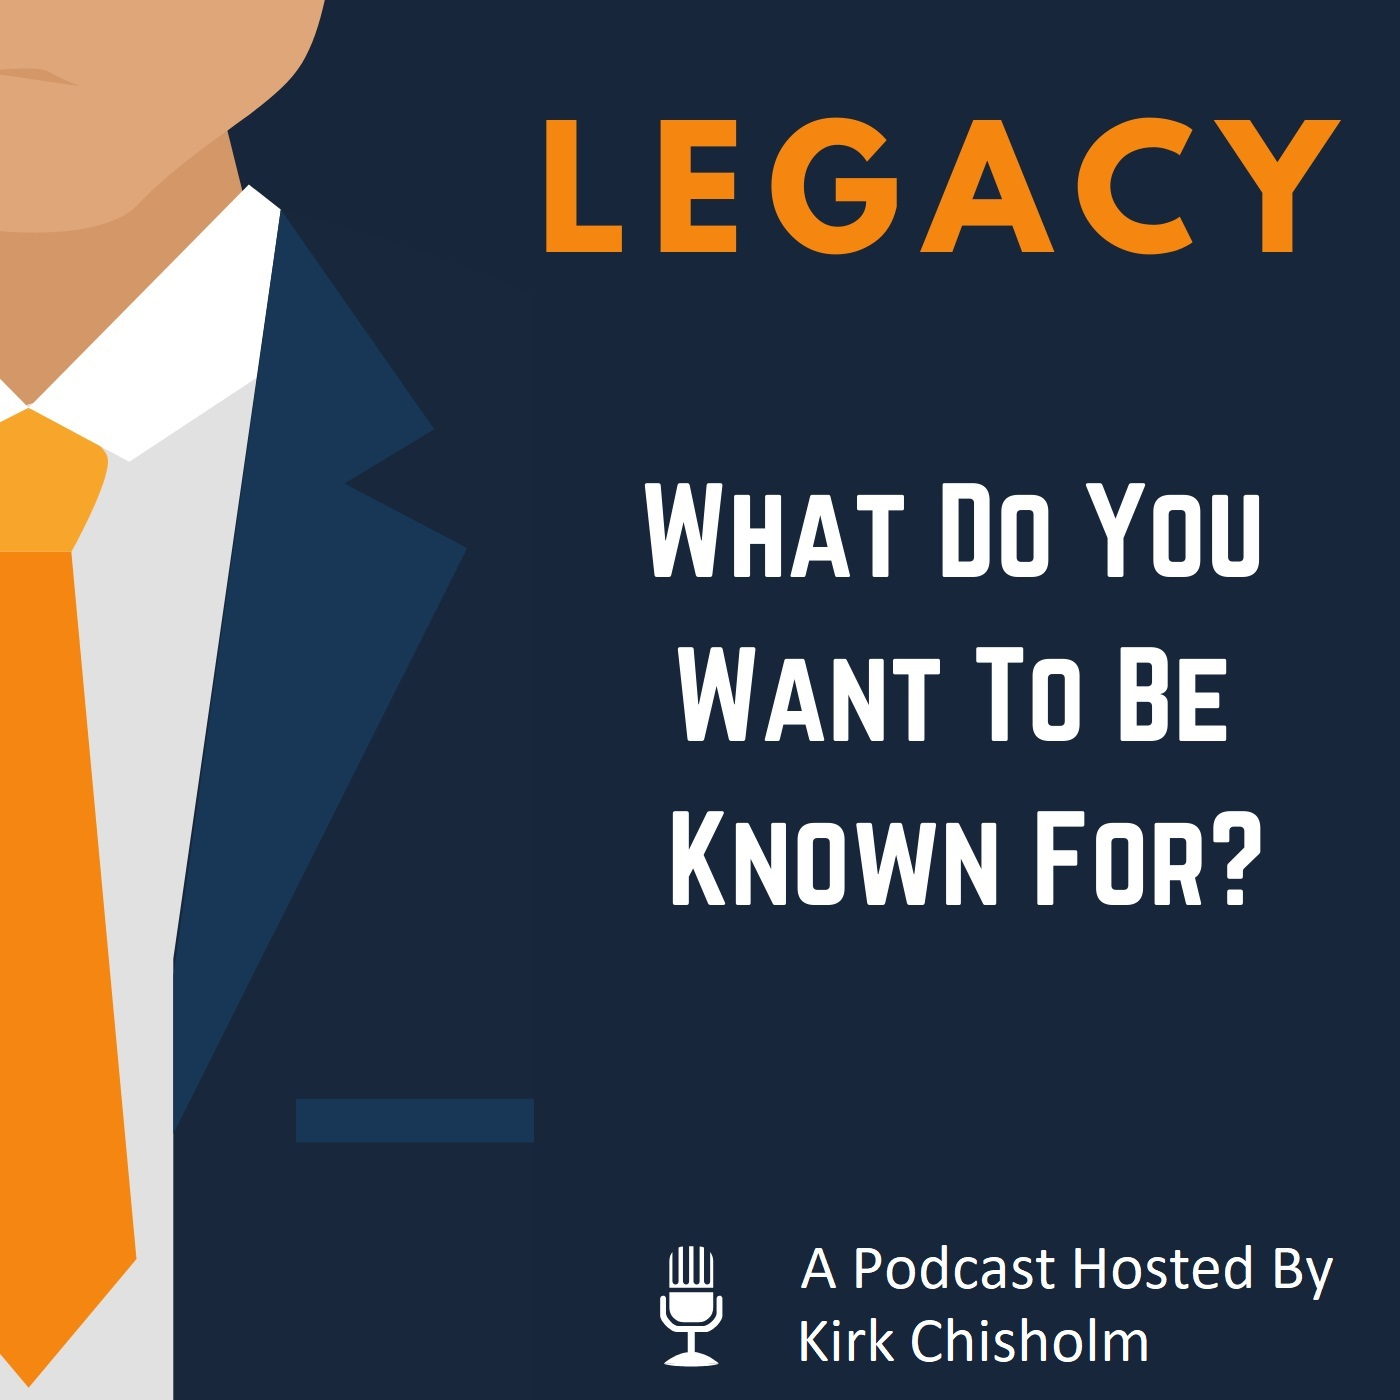 Legacy-Podcast-Cover-KC